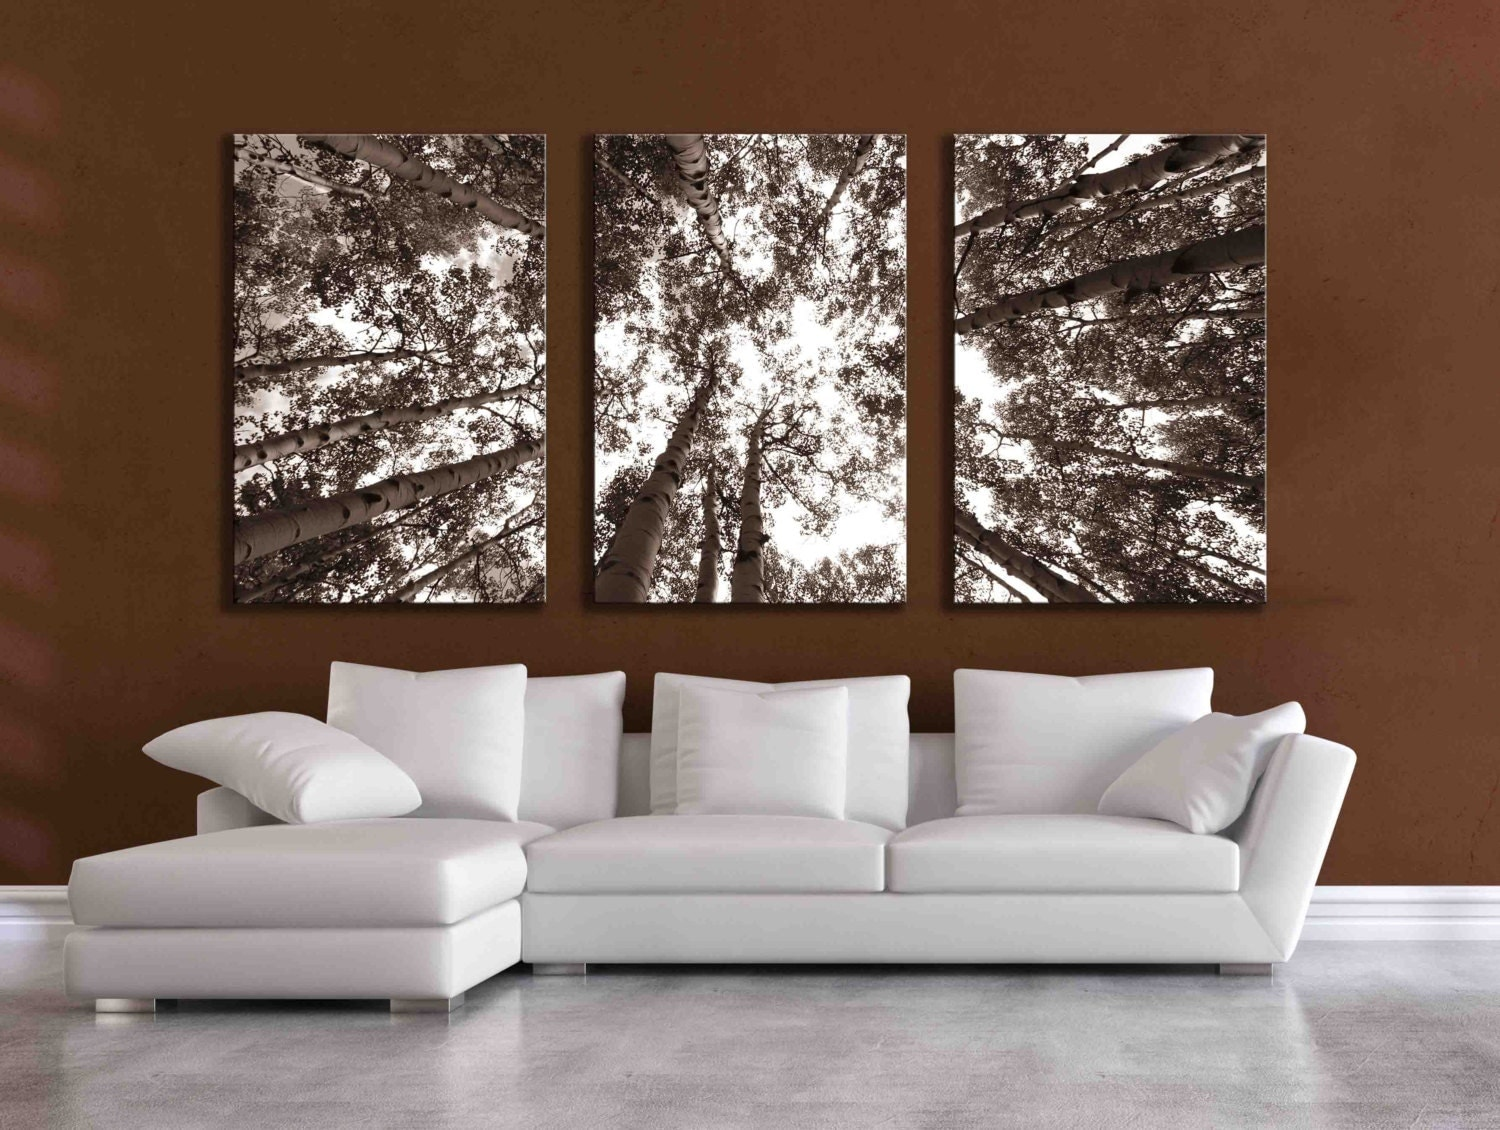 Wall Art On Cloth : Three large multi panel wall art aspen inch or